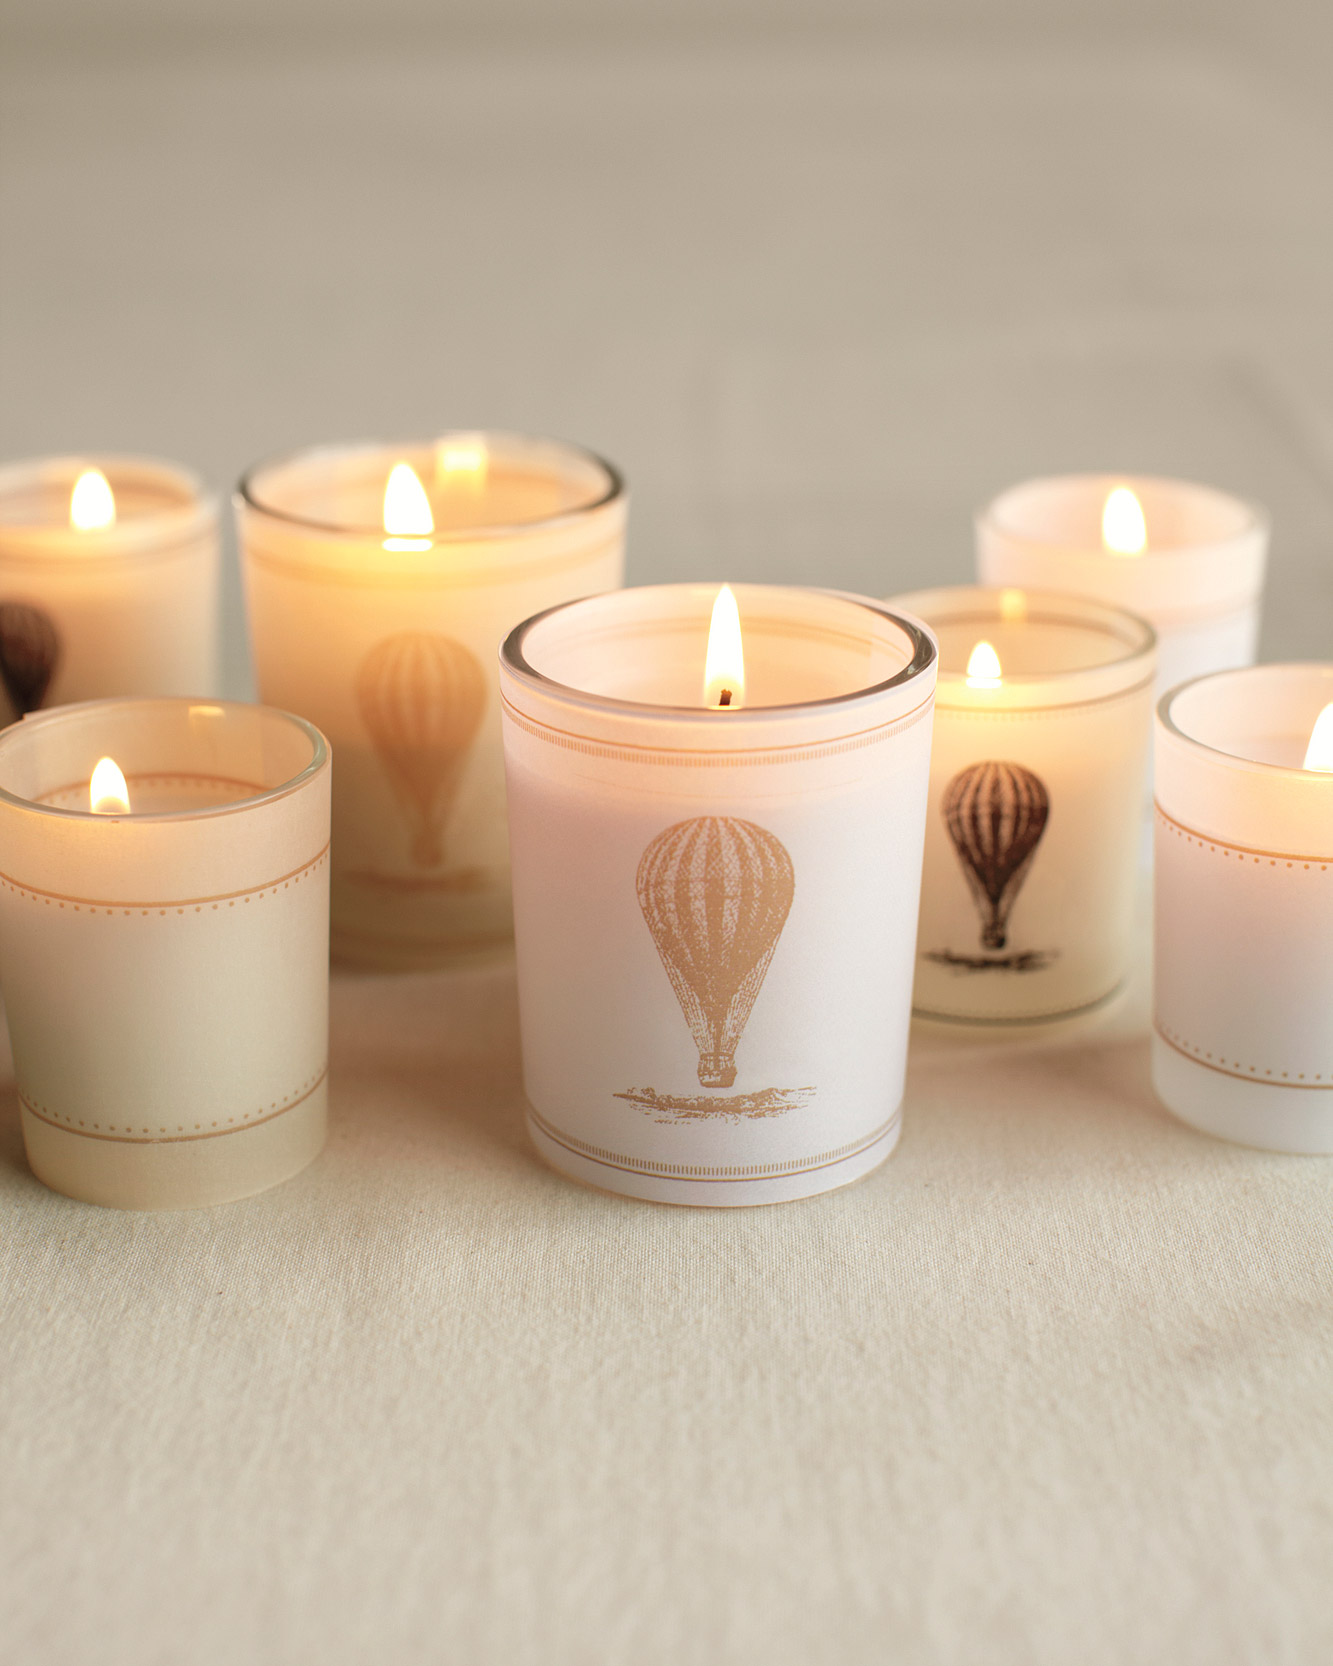 For a Countryside Celebration: Uplifting Candle Wraps